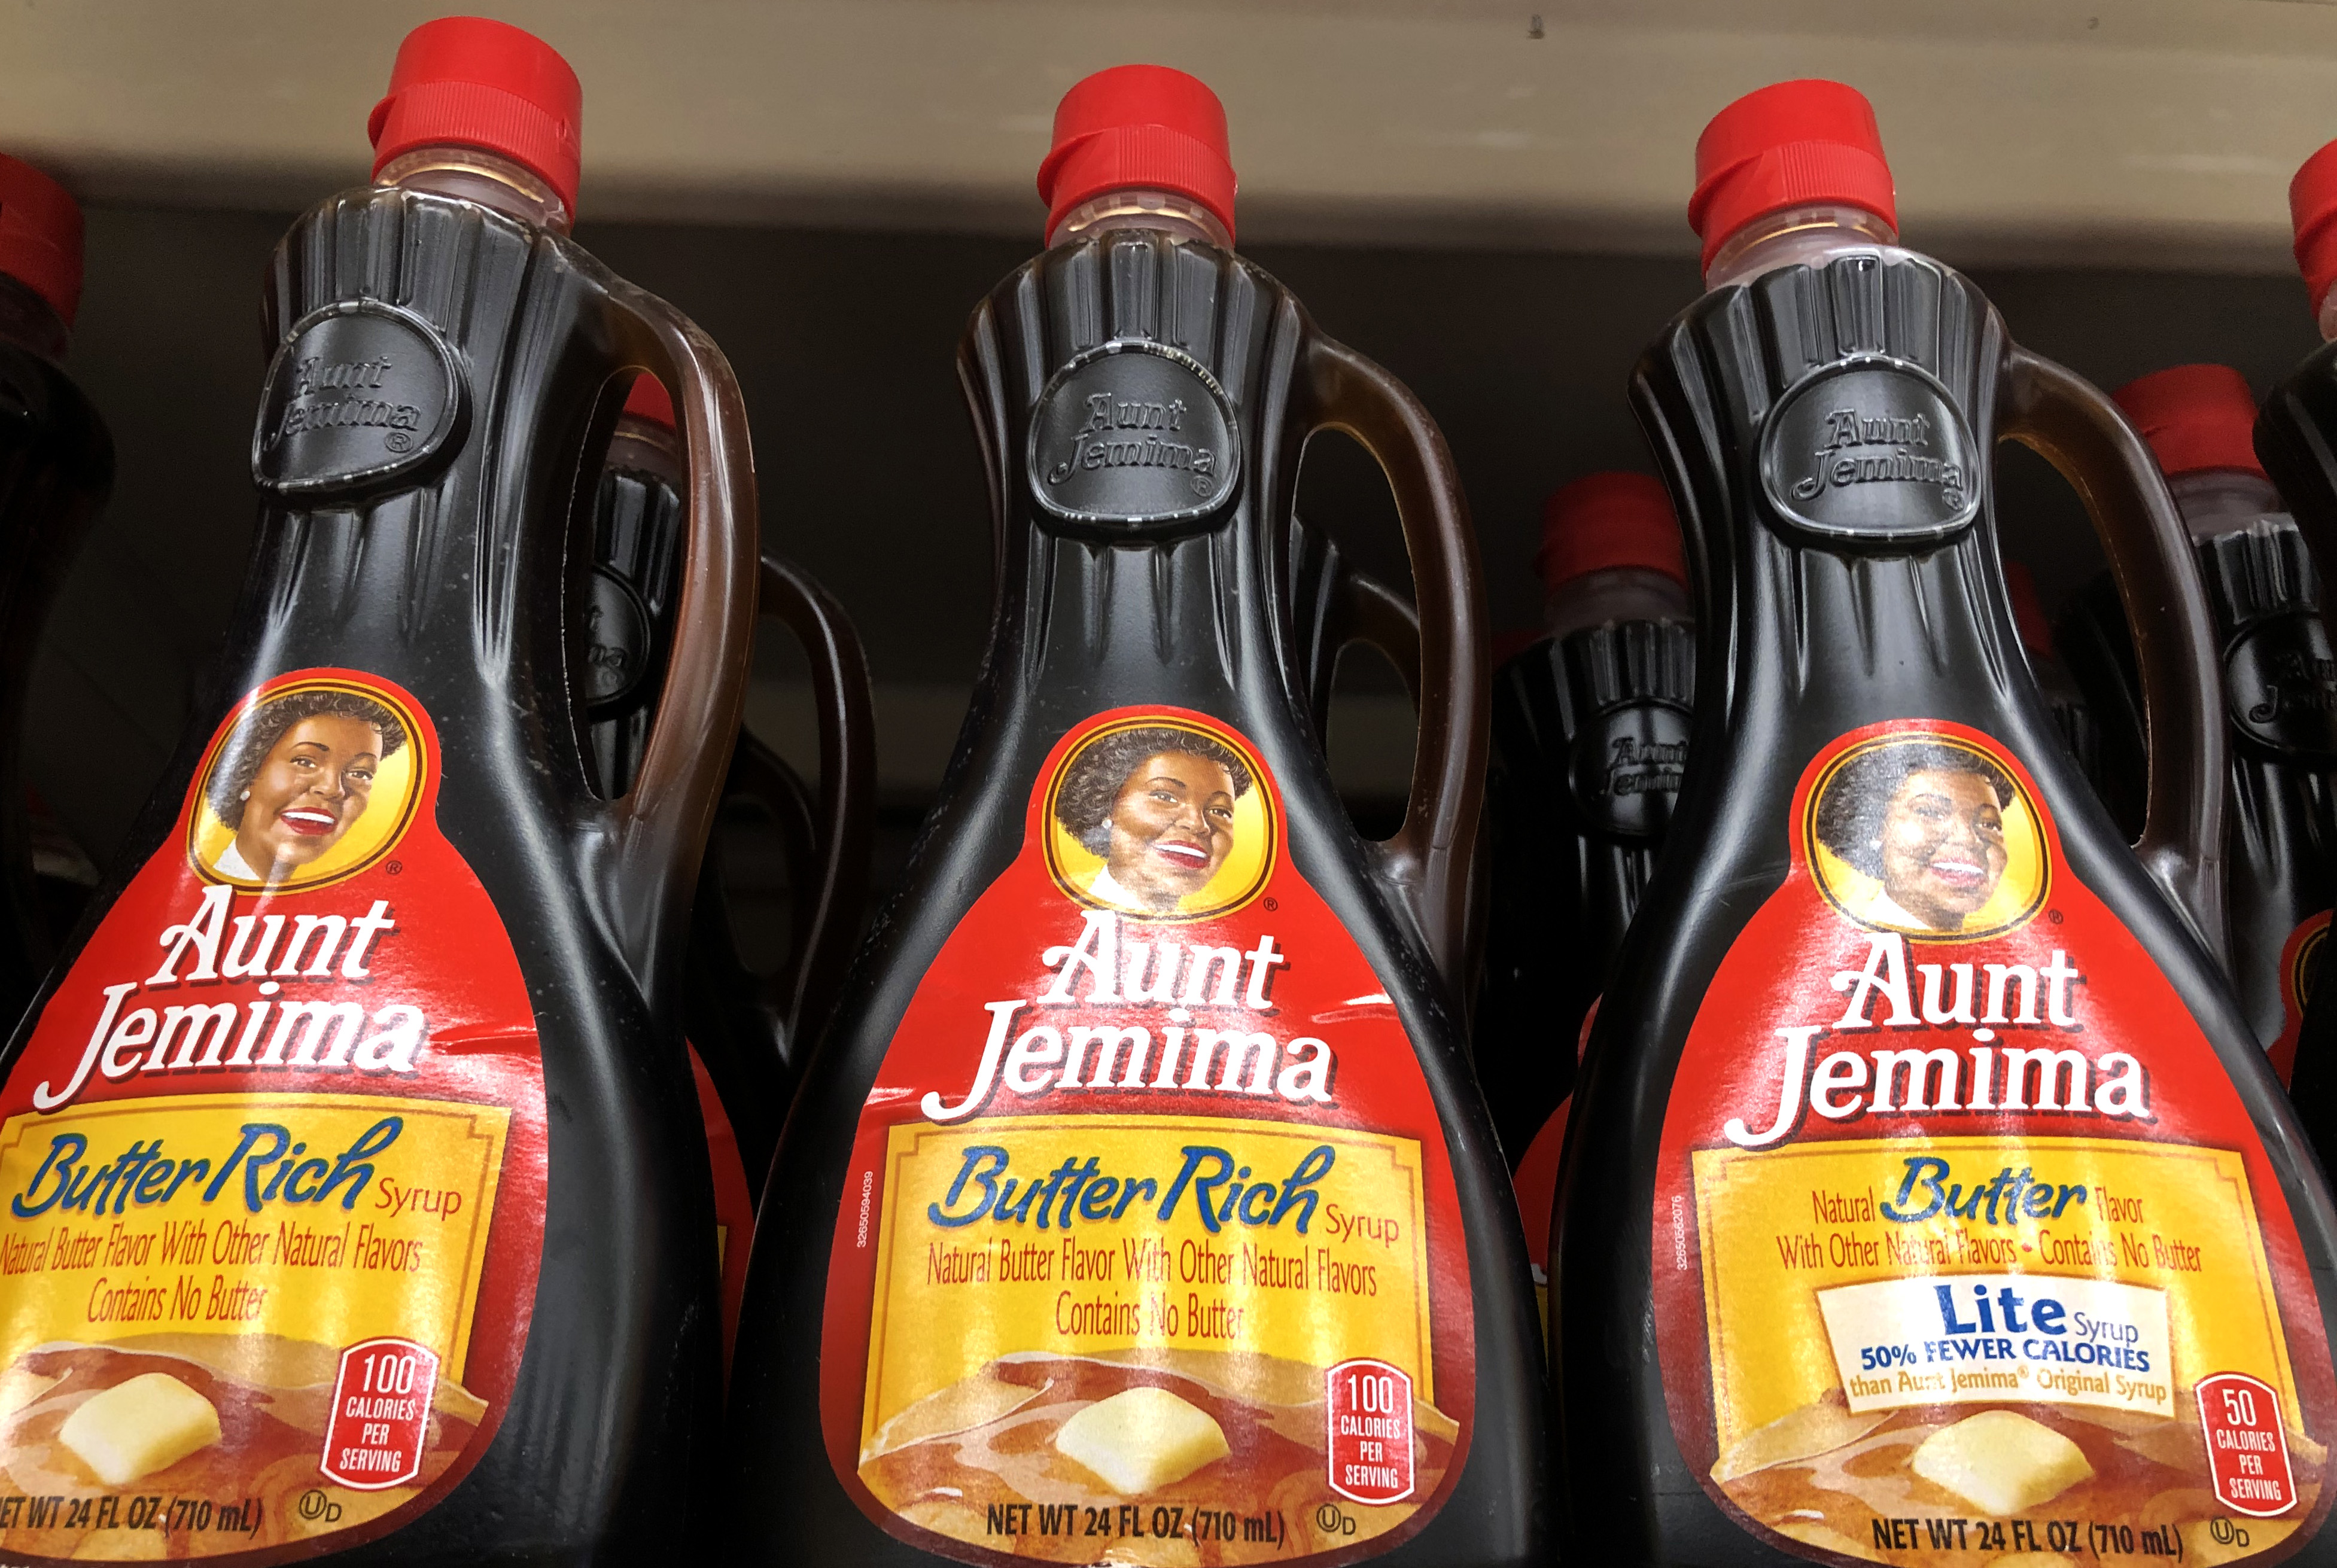 Bottles of Aunt Jemima pancake syrup are displayed on a shelf at a Safeway store on June 17, 2020 in San Anselmo, California. (Photo by Justin Sullivan/Getty Images)